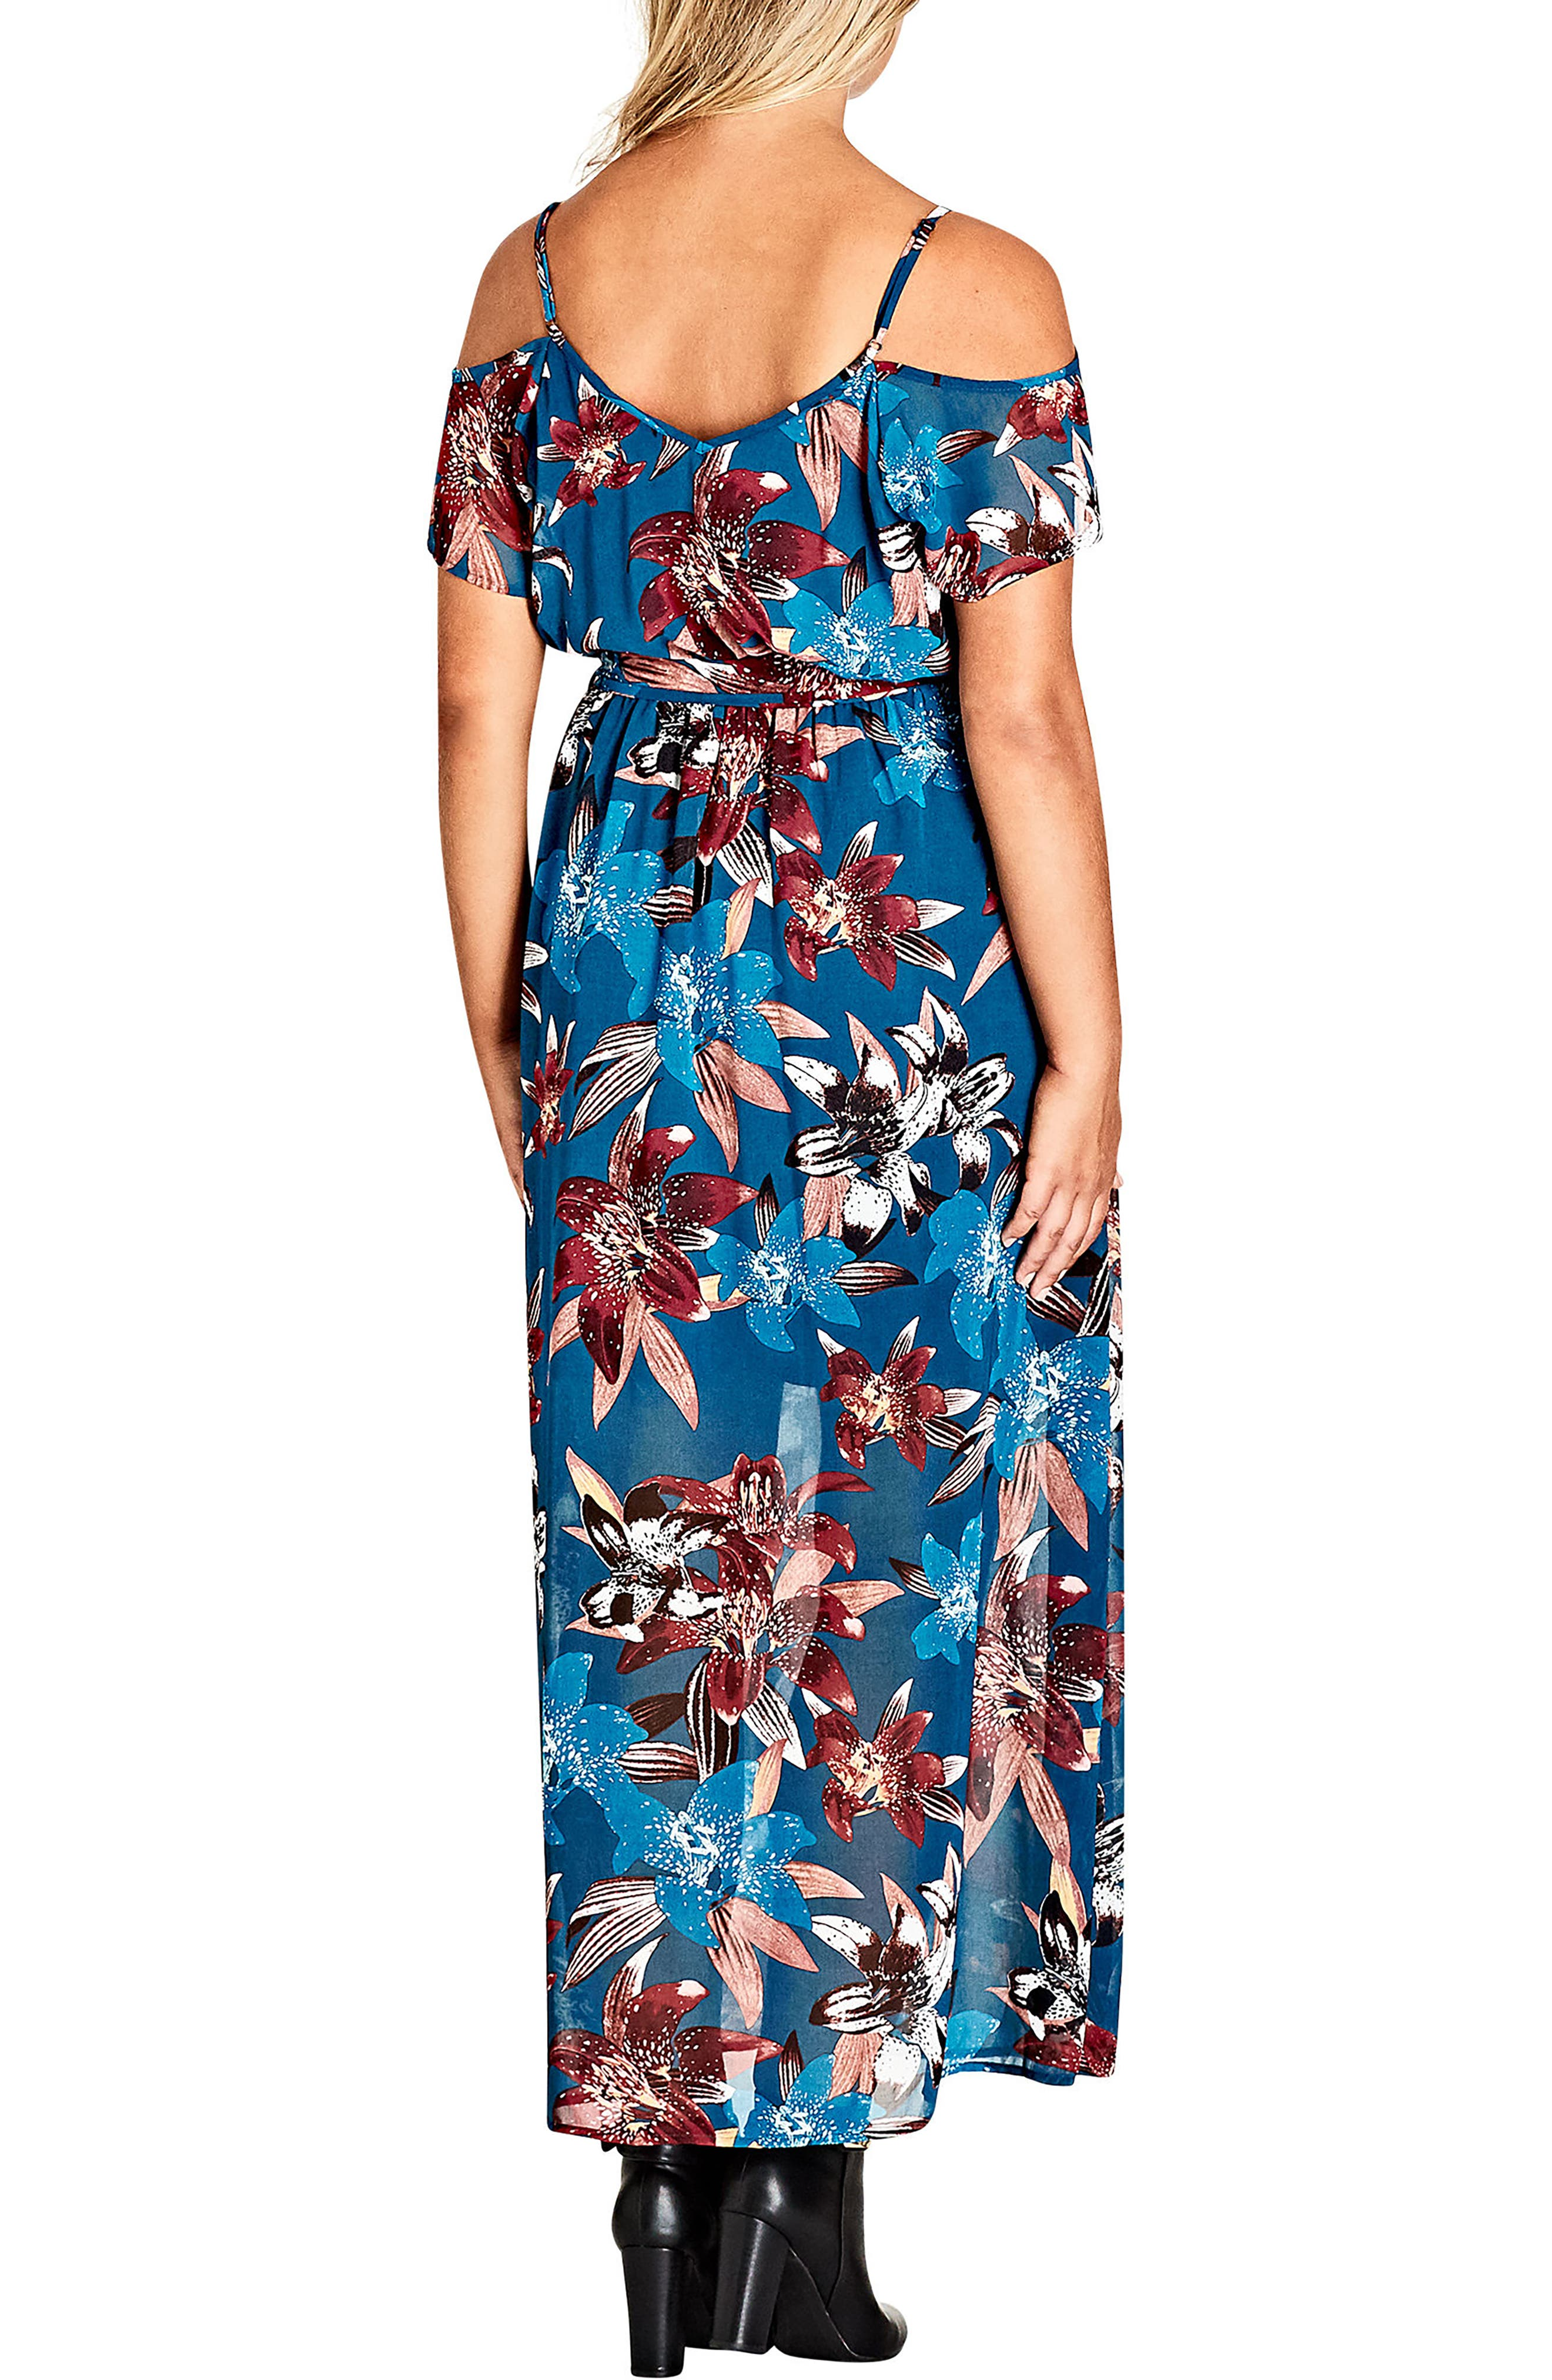 Fall Lily Off the Shoulder Maxi Dress,                             Alternate thumbnail 2, color,                             Fall Lily